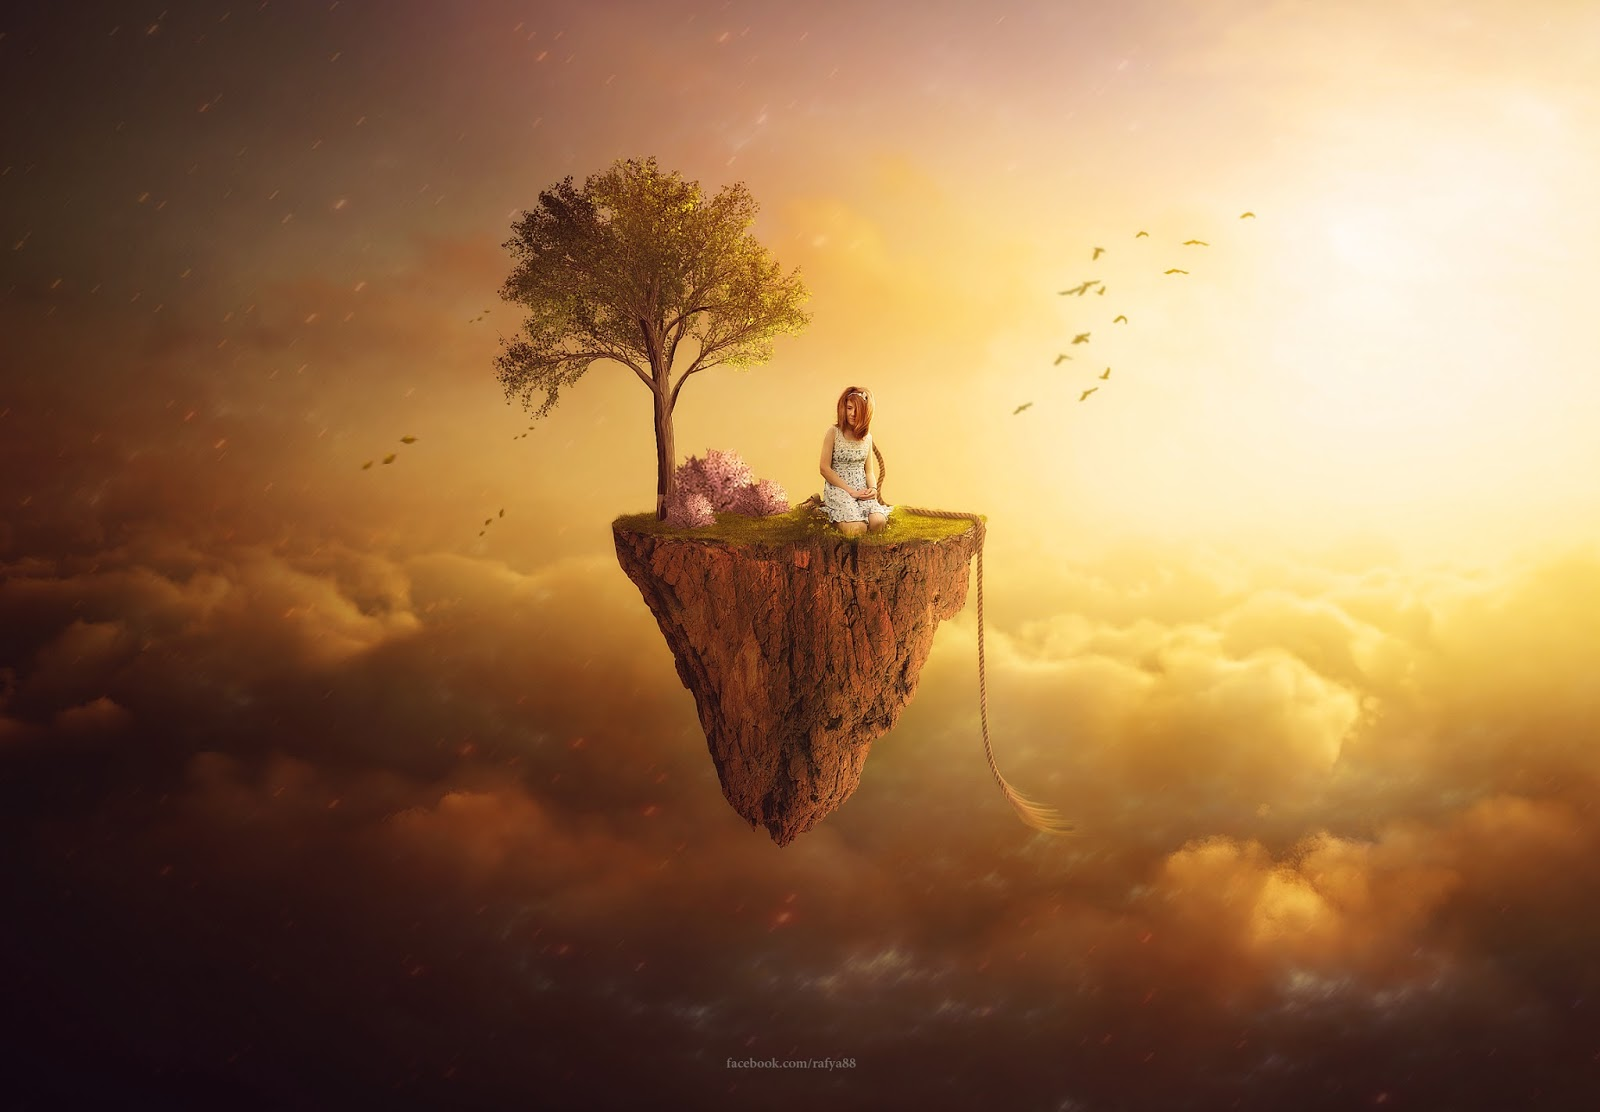 This Video Will Show You How To Make Fantasy Manipulation Floating Land Scene Effect In Photoshop CC 2015 By Compositing Some Images Adding Light And Nice